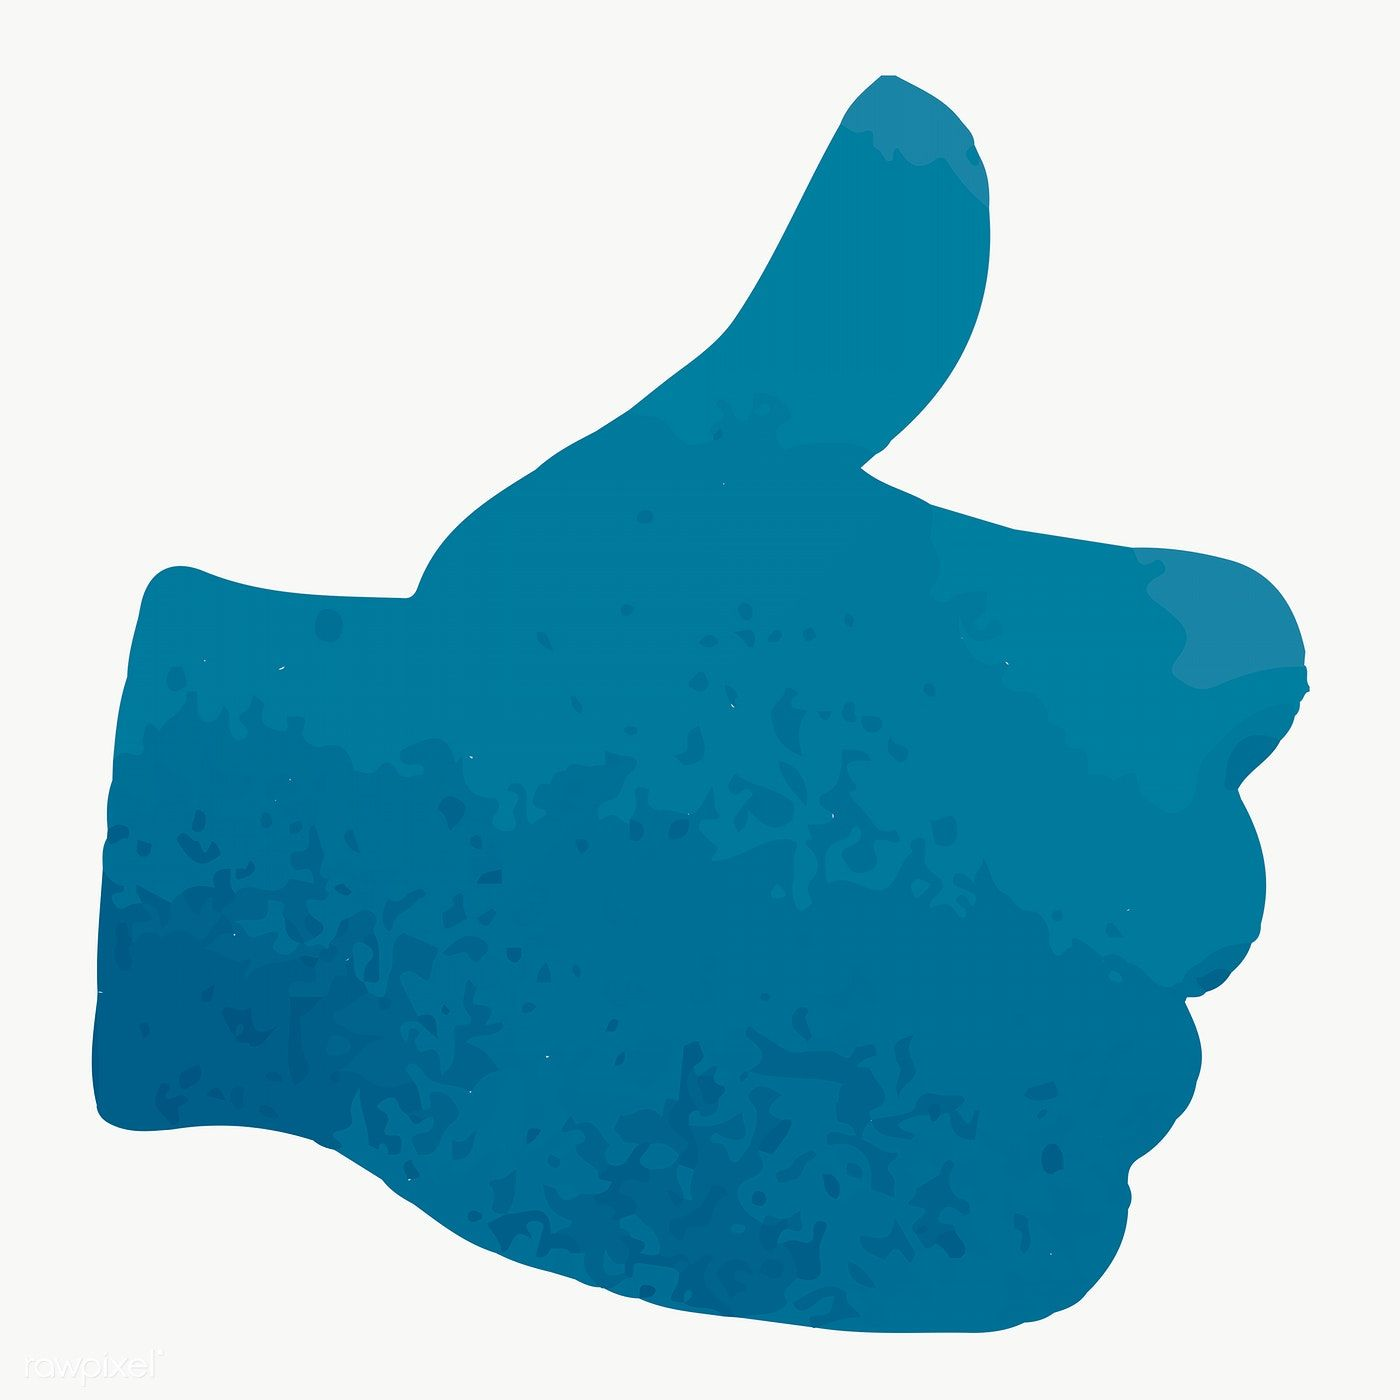 Download Premium Png Of Thumbs Up Sign Social Ads Template Transparent Png Thumbs Up Sign Social Ads Social Media Icons Vector